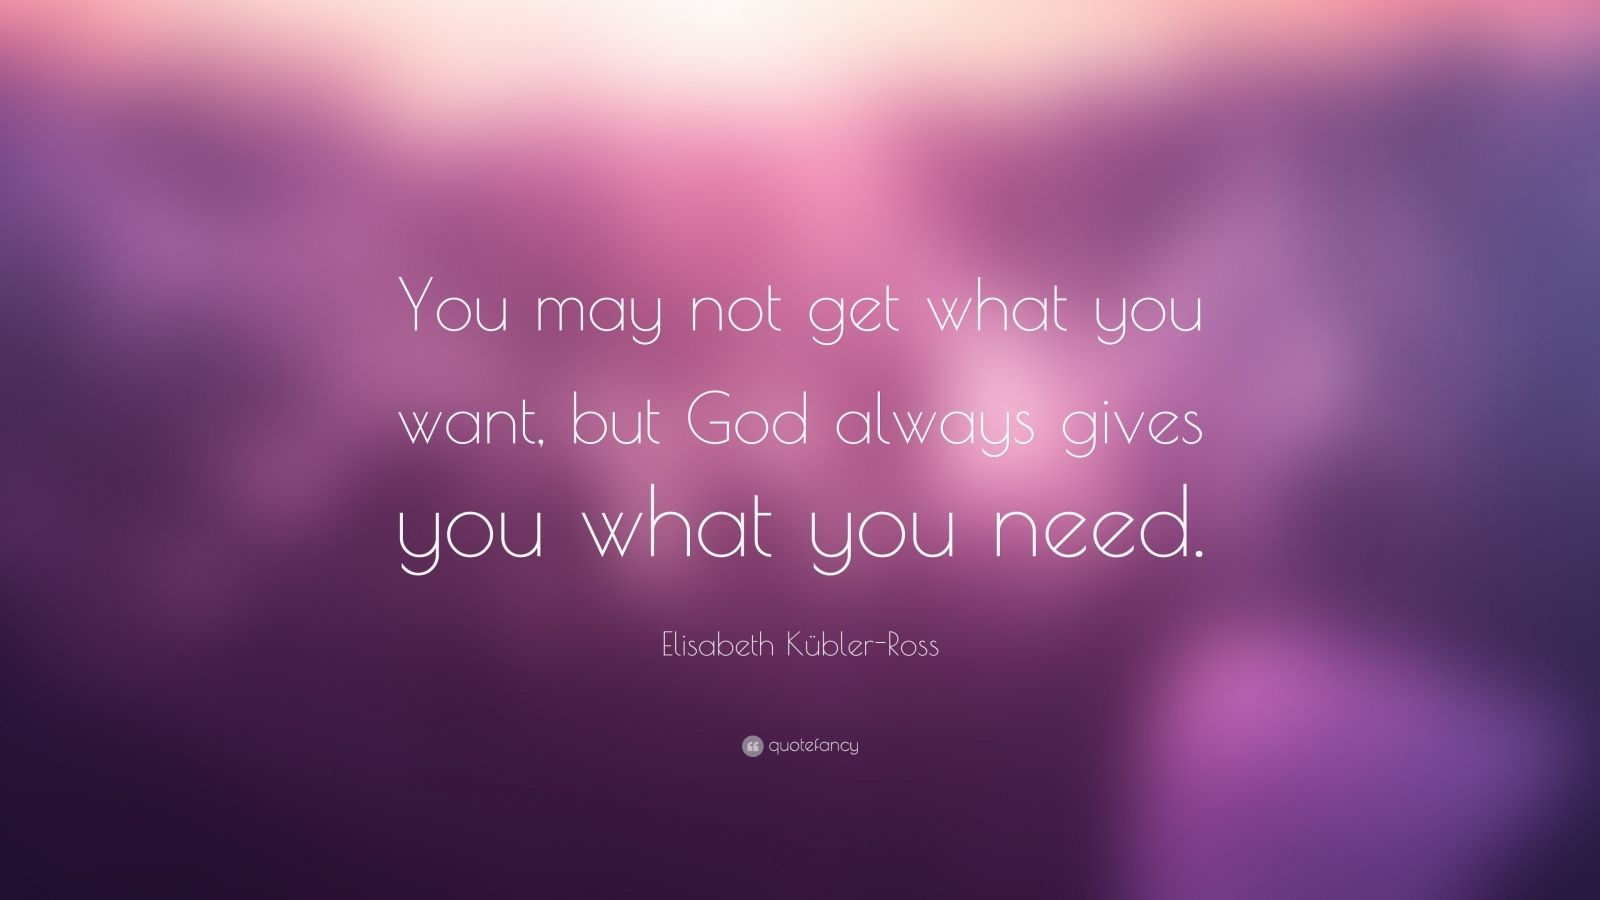 """Elisabeth Kübler-Ross Quote: """"You may not get what you want, but God always gives you what you need."""""""